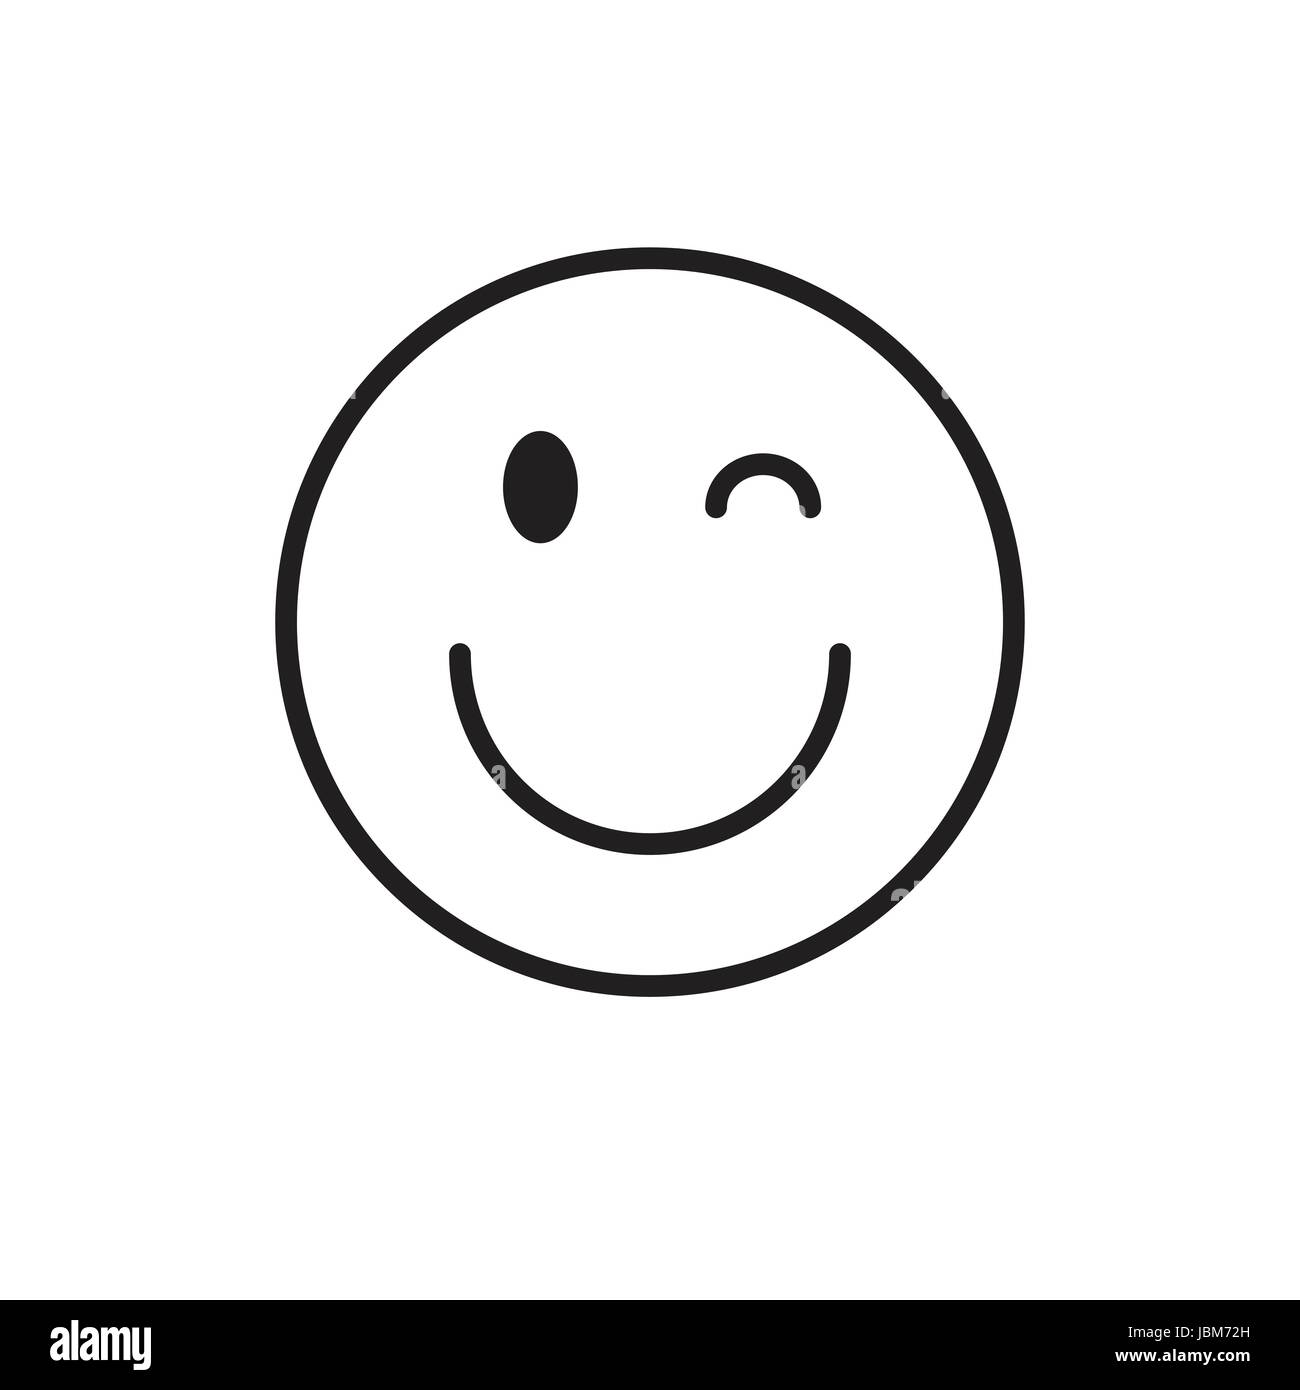 Emoticon Wink Black and White Stock Photos & Images - Alamy